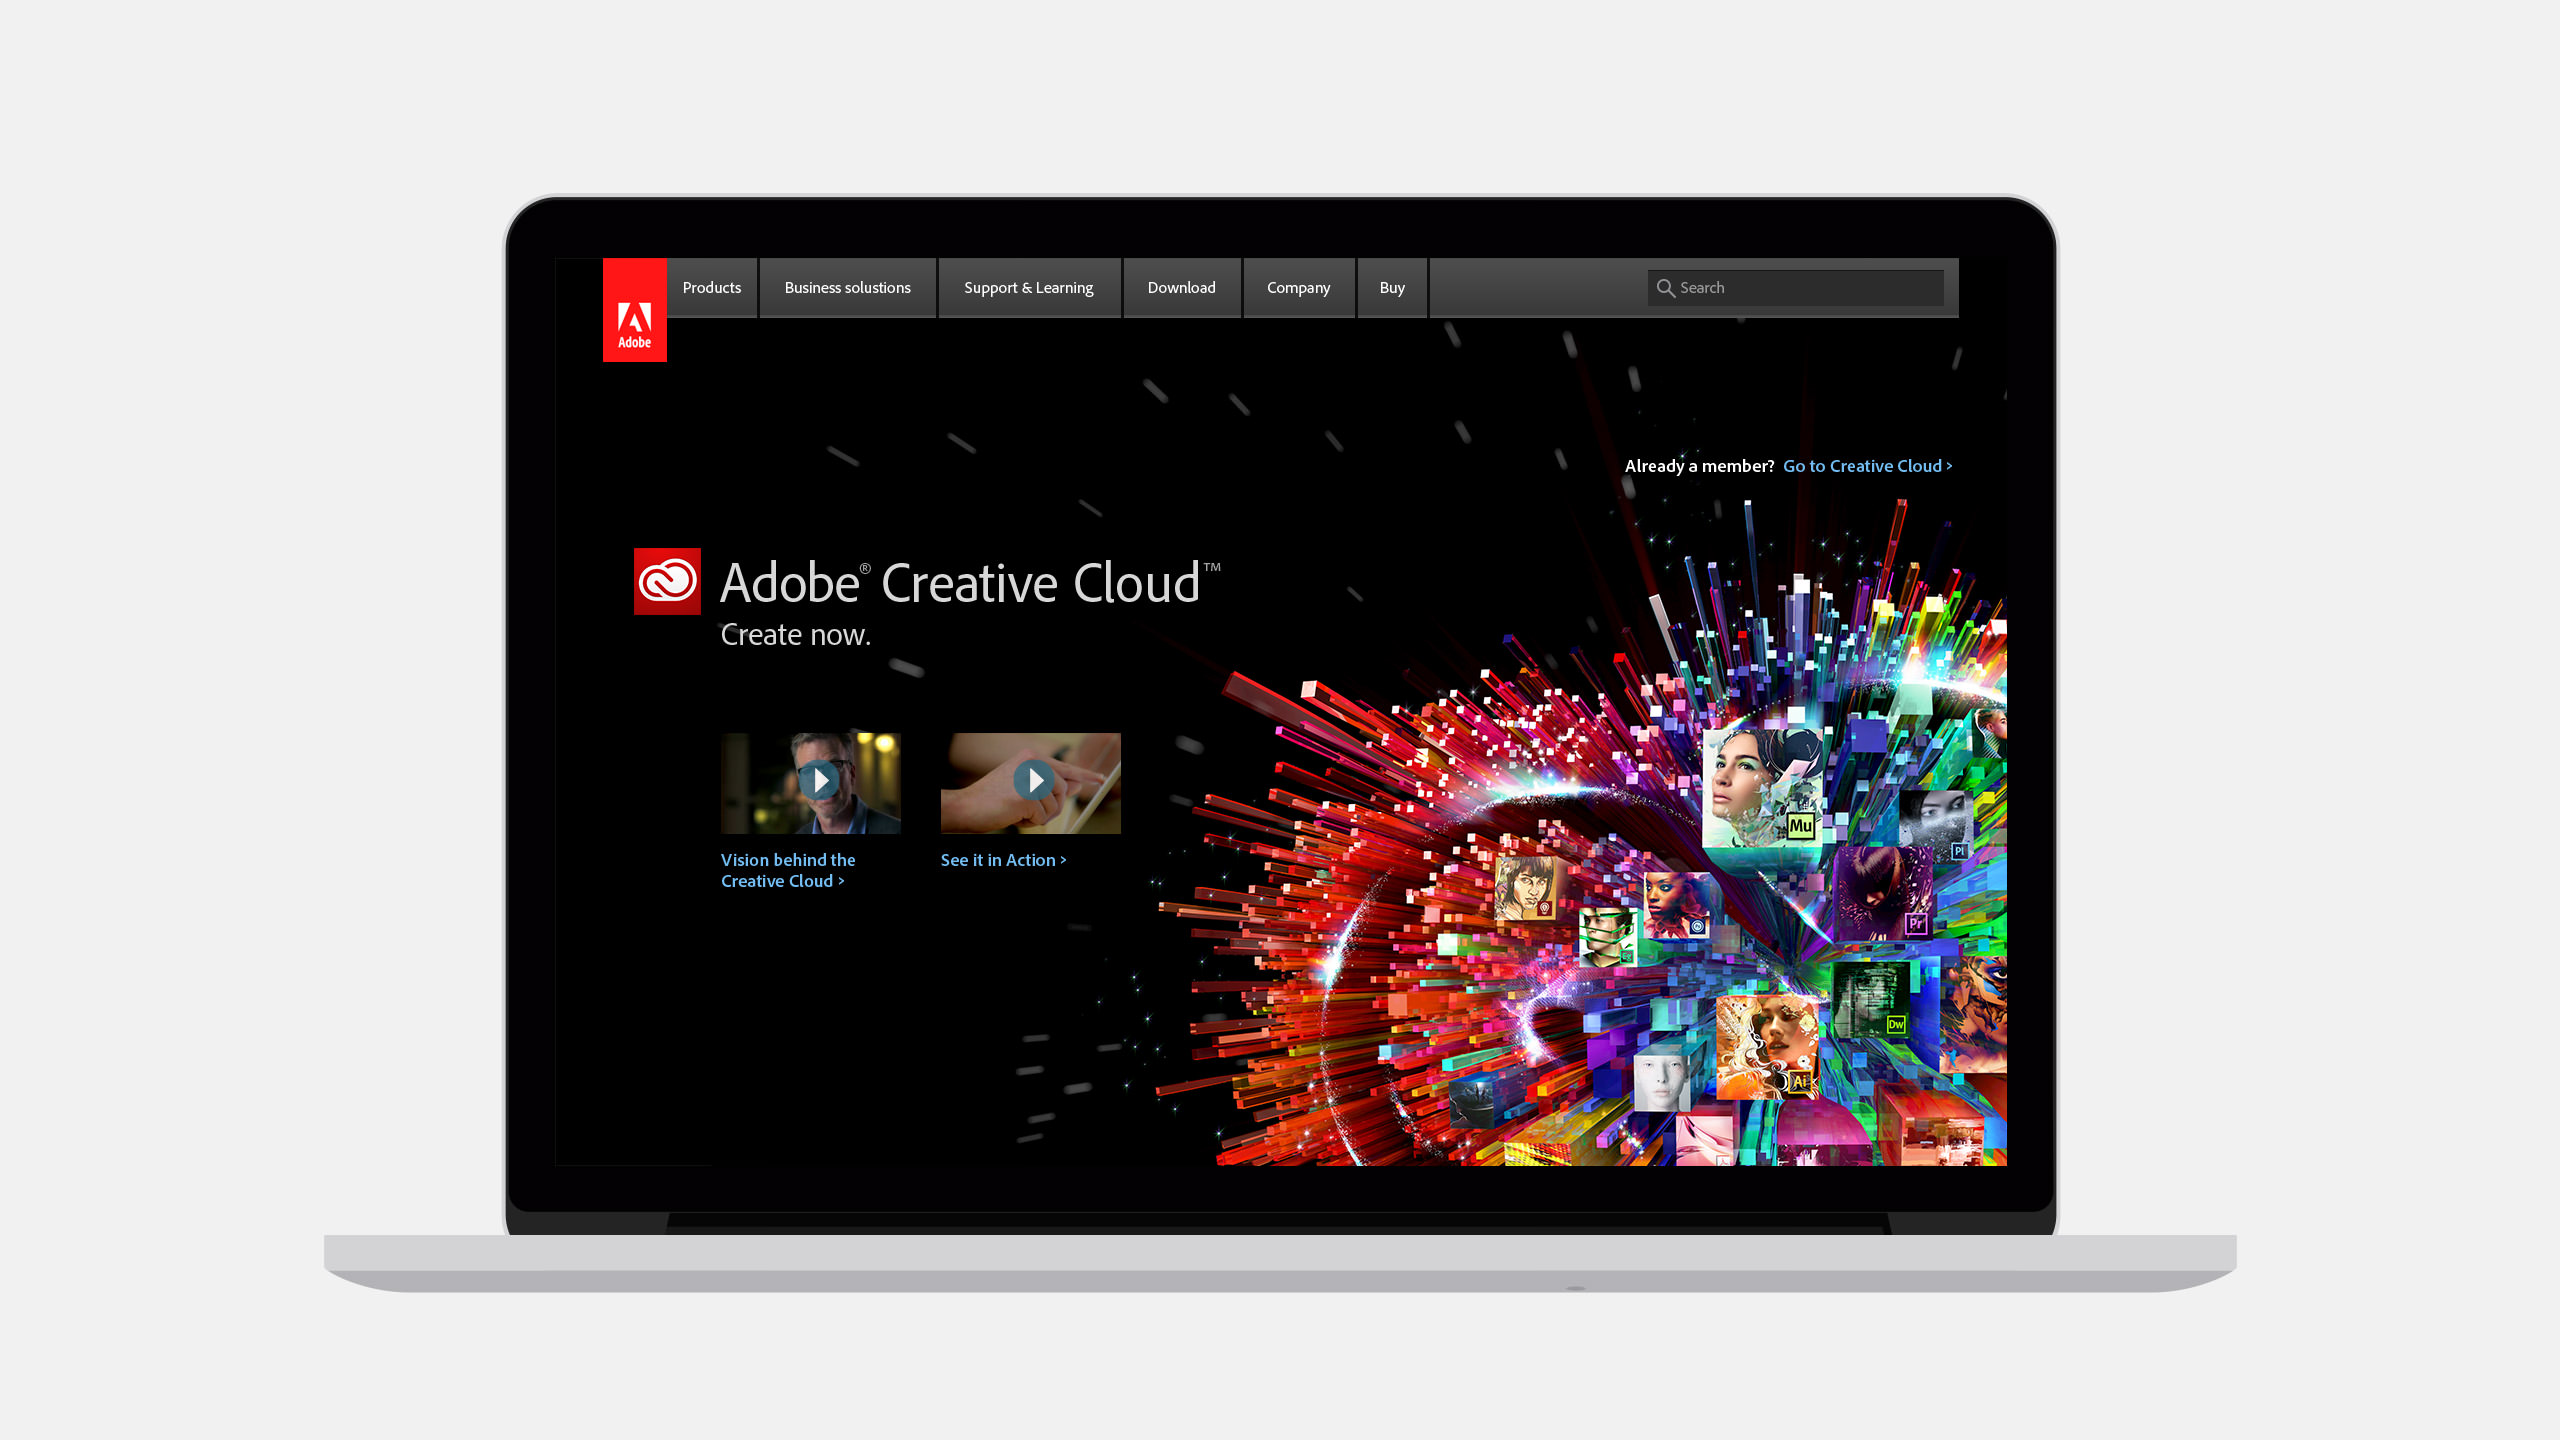 Adobe Creative Cloud Web Product on a Laptop